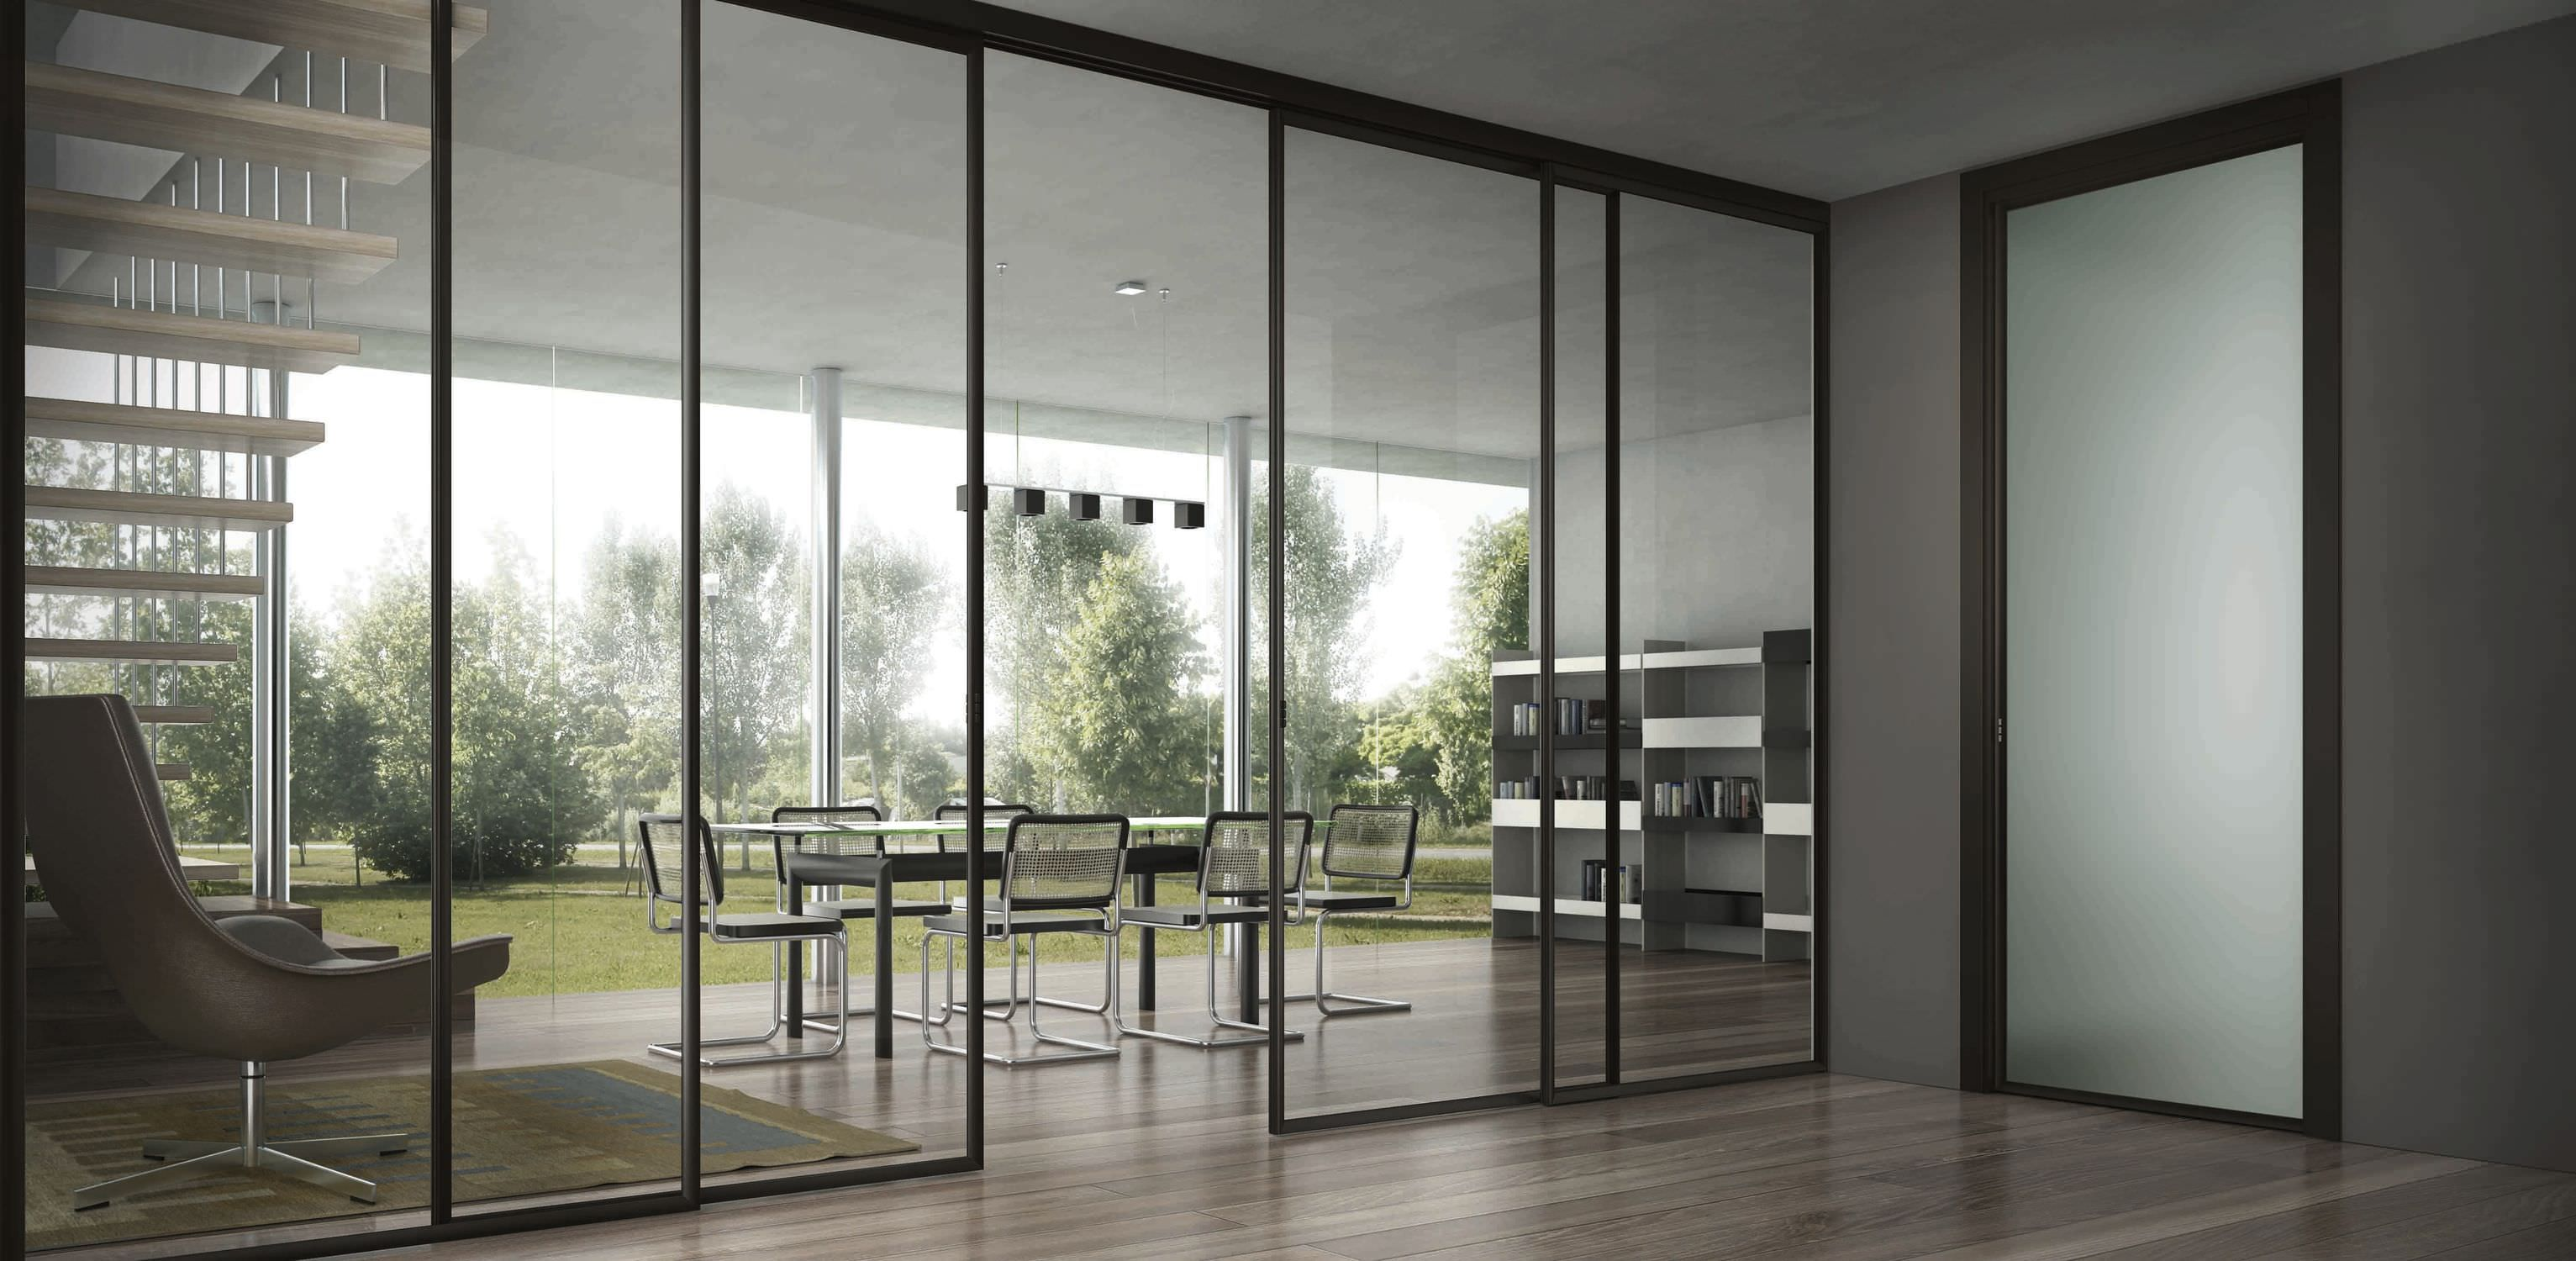 Genial Modern Concept Sliding Patio Glass Doors With Anderson Sliding .